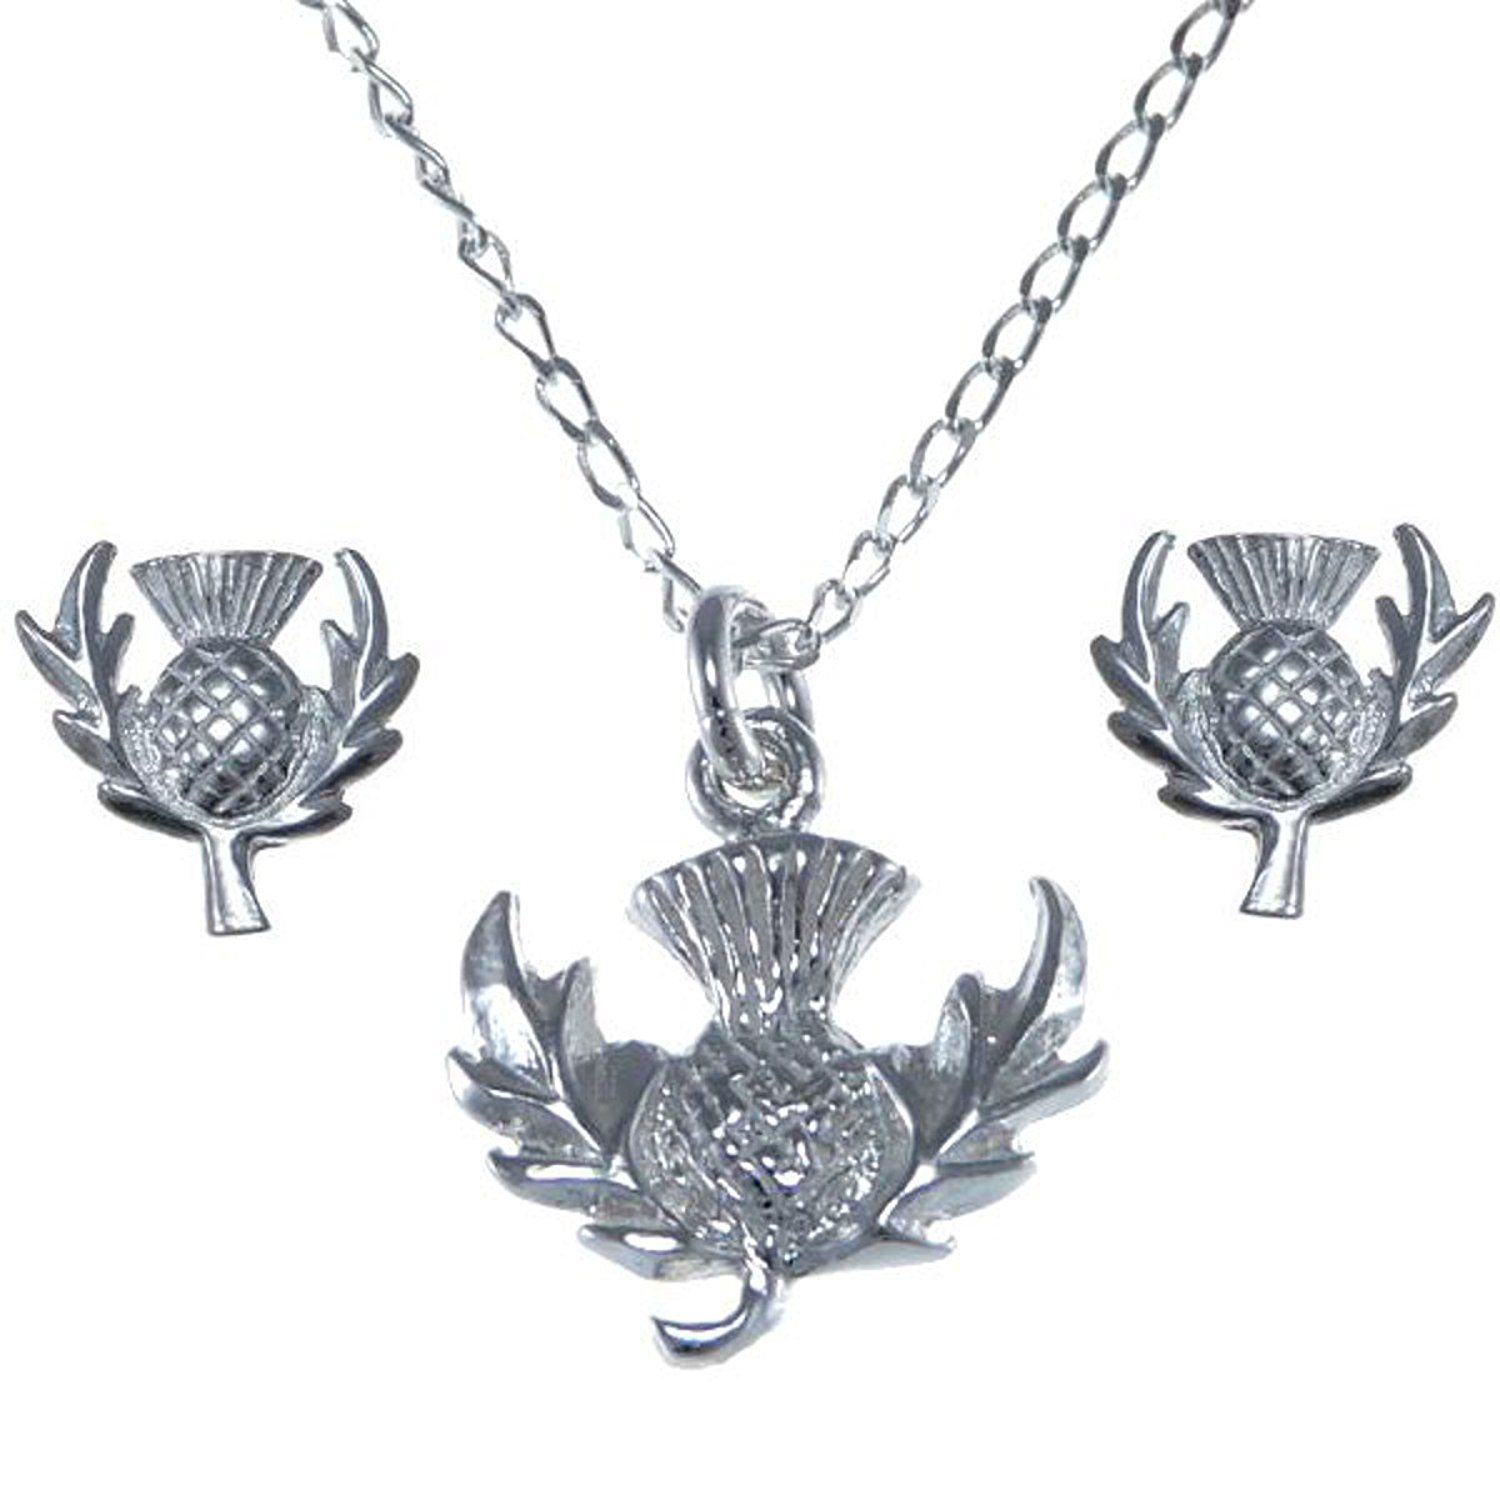 Scottish necklace ladies gift silver thistle pendant and earring